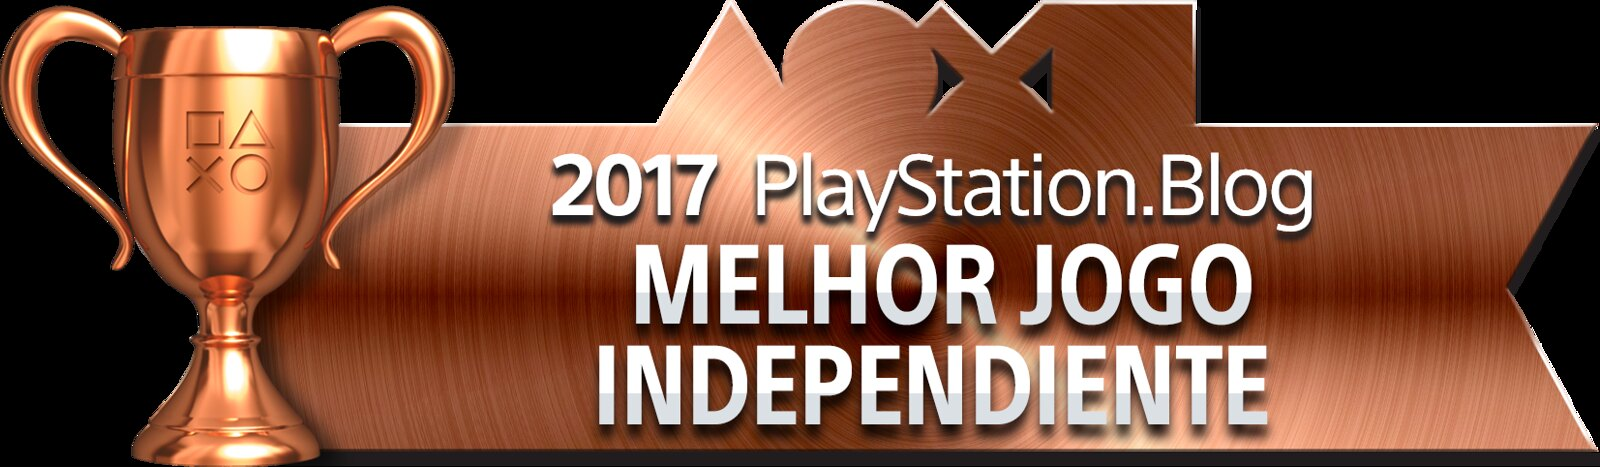 PlayStation Blog Game of the Year 2017 - Best Independent Game (Bronze)